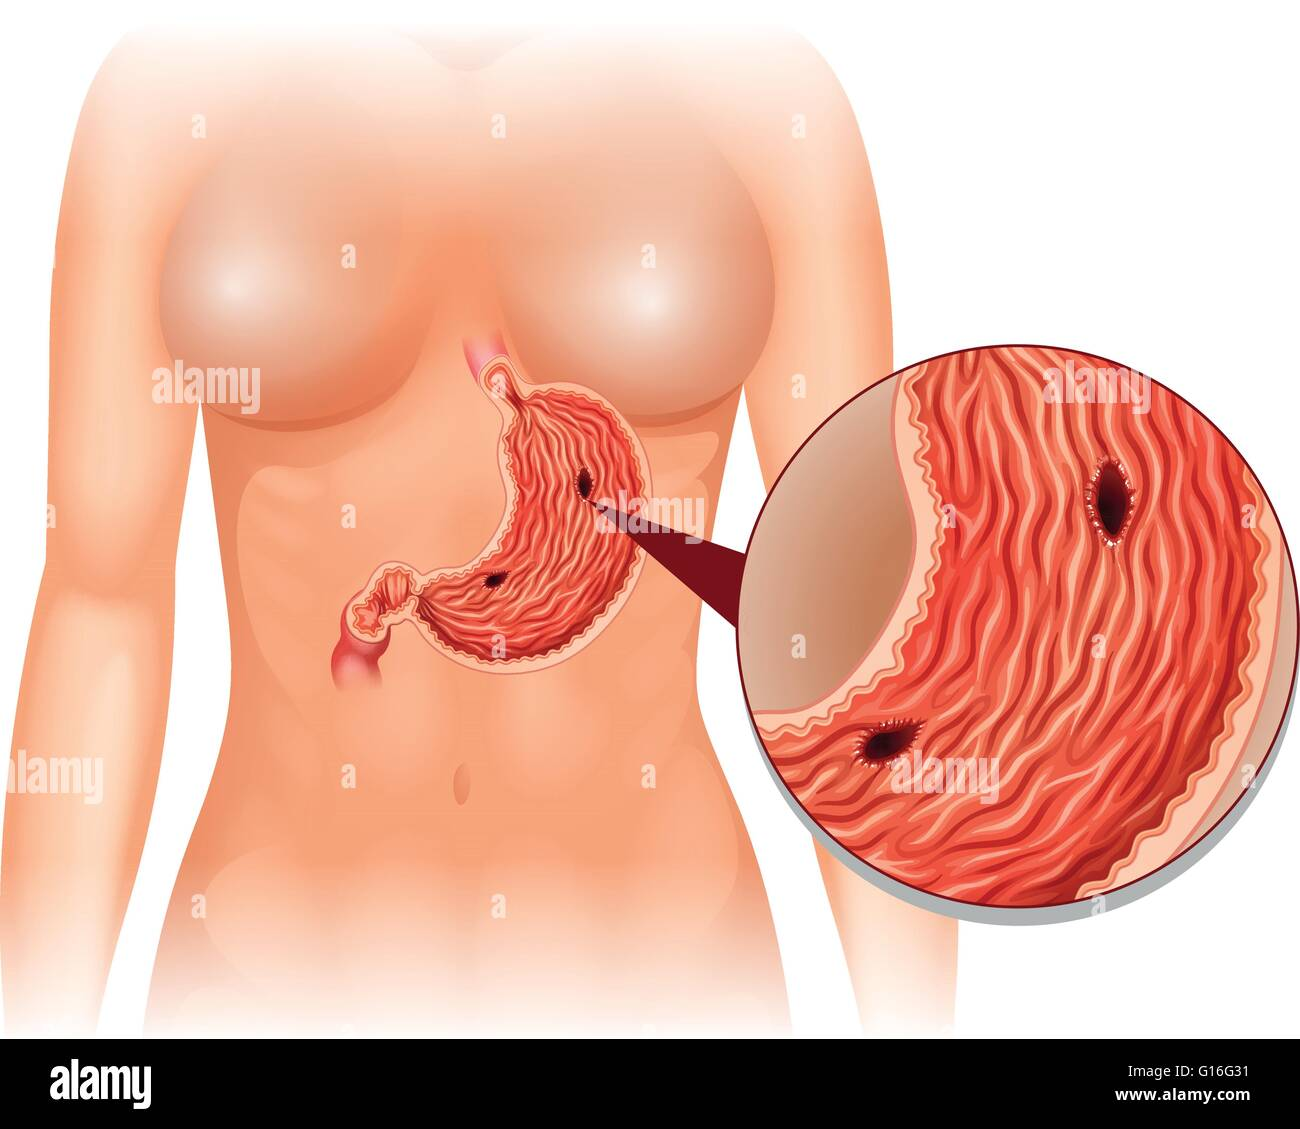 stomach ulcer diagram in woman illustration G16G31 stomach ulcer diagram in woman illustration stock vector art